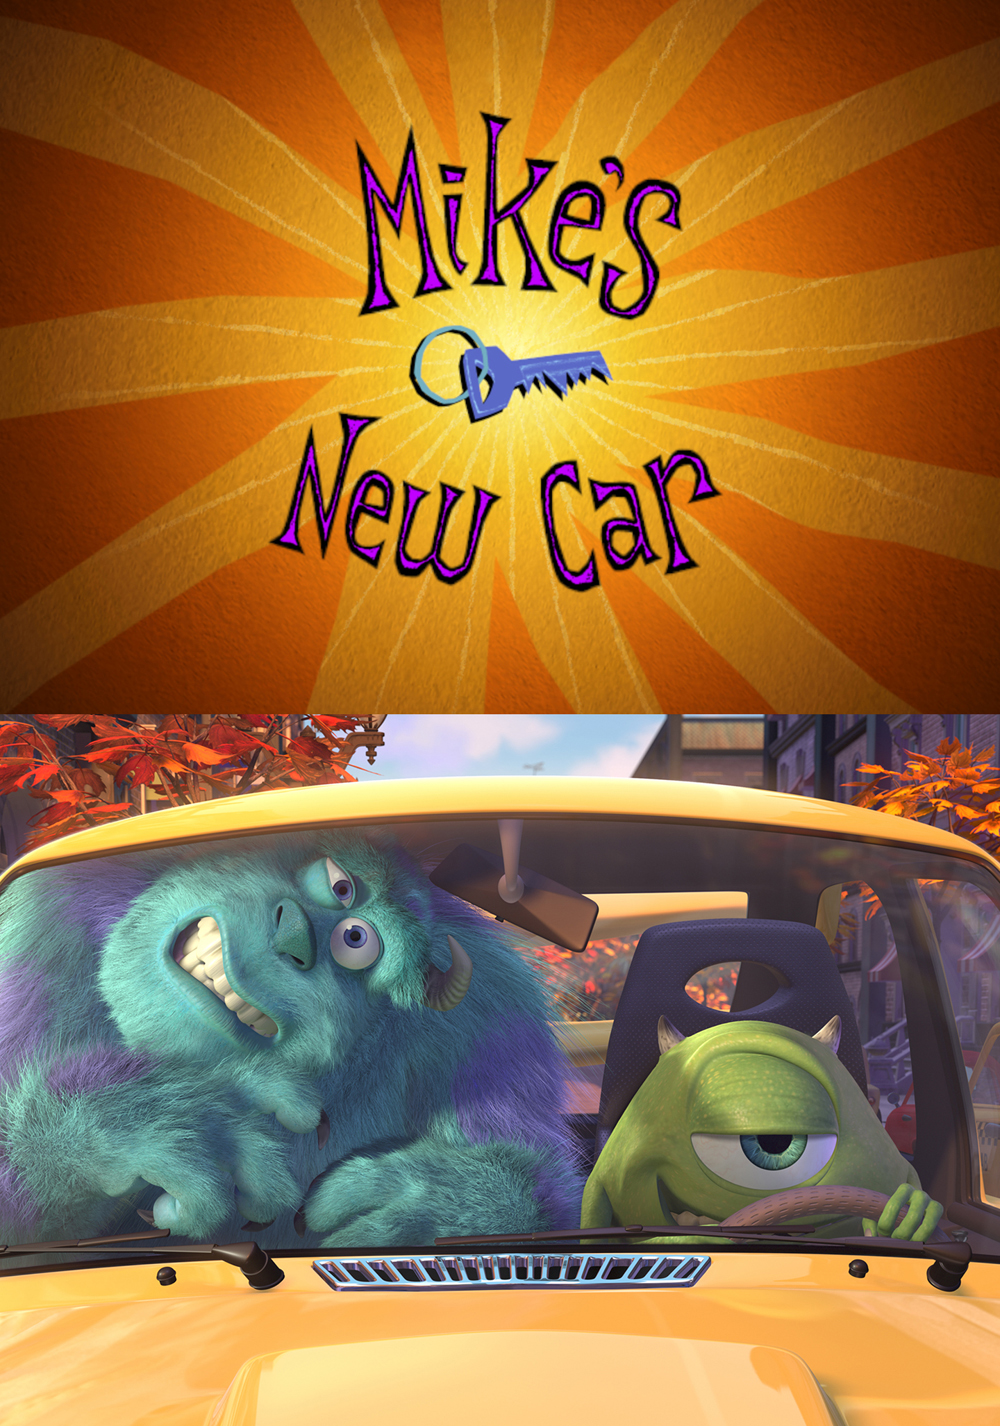 pixar disney la nouvelle voiture de bob mike new car affiche poster